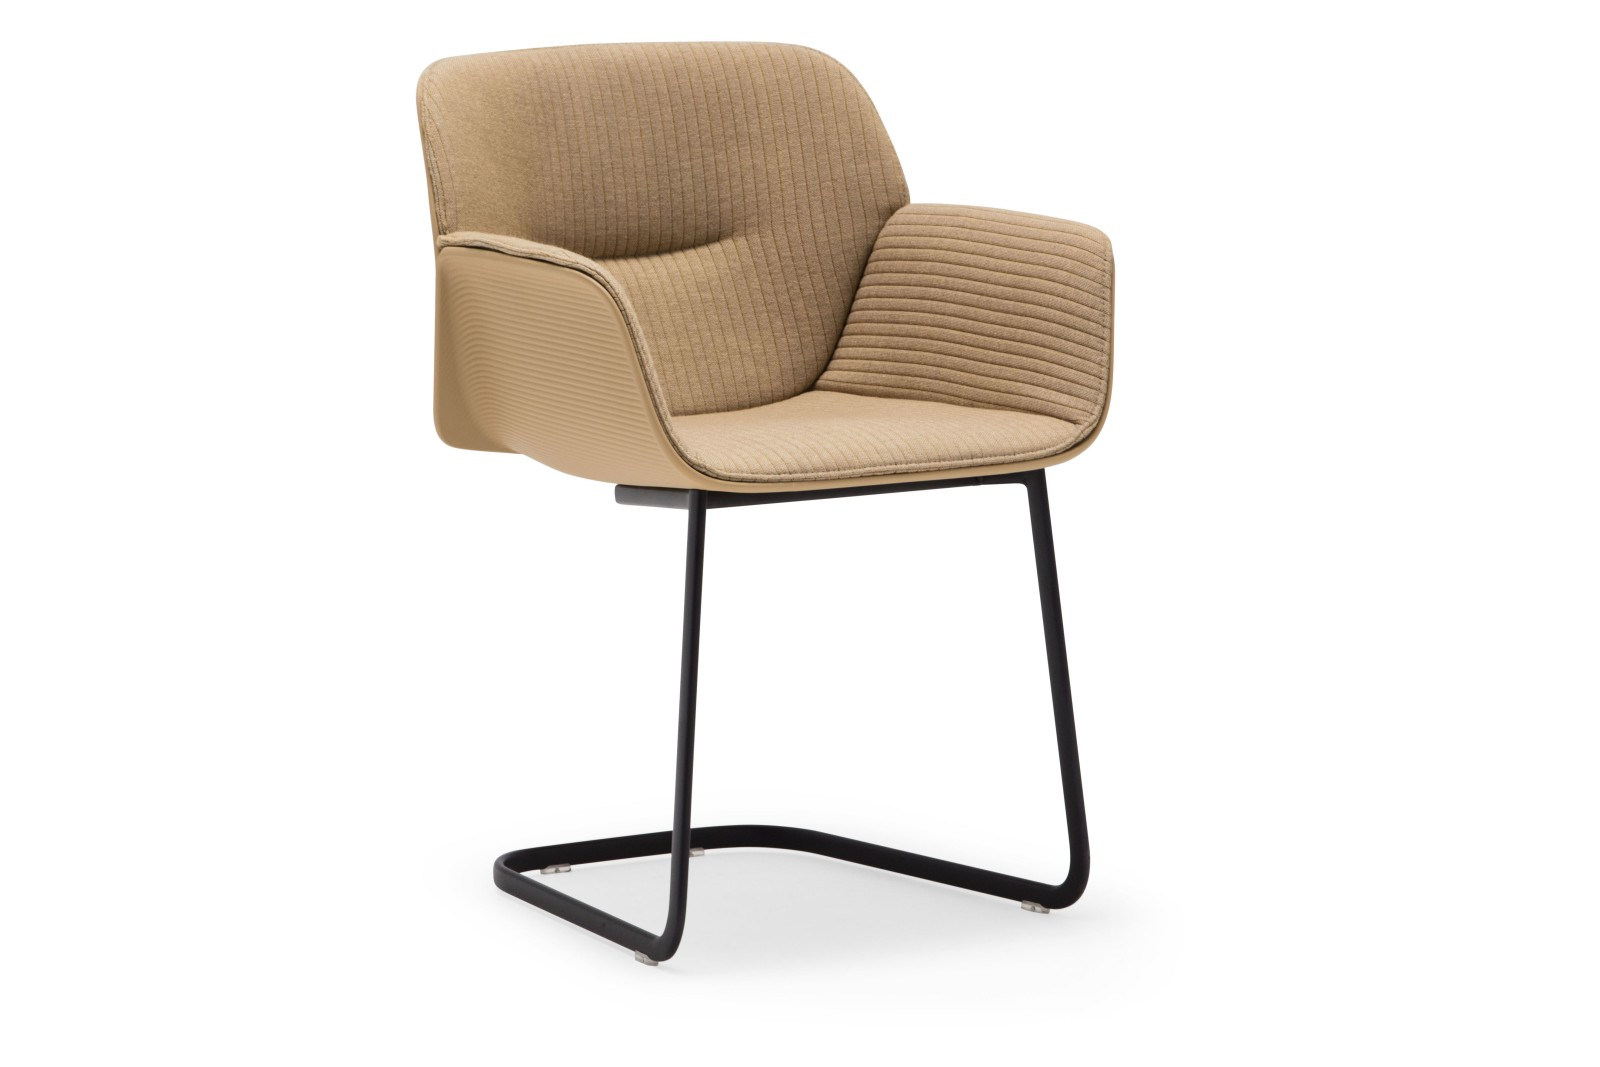 Nuez Cantilever Base Armchair with Seat and Backrest Cushion Andreu World Jacquard One, Thermo-polym